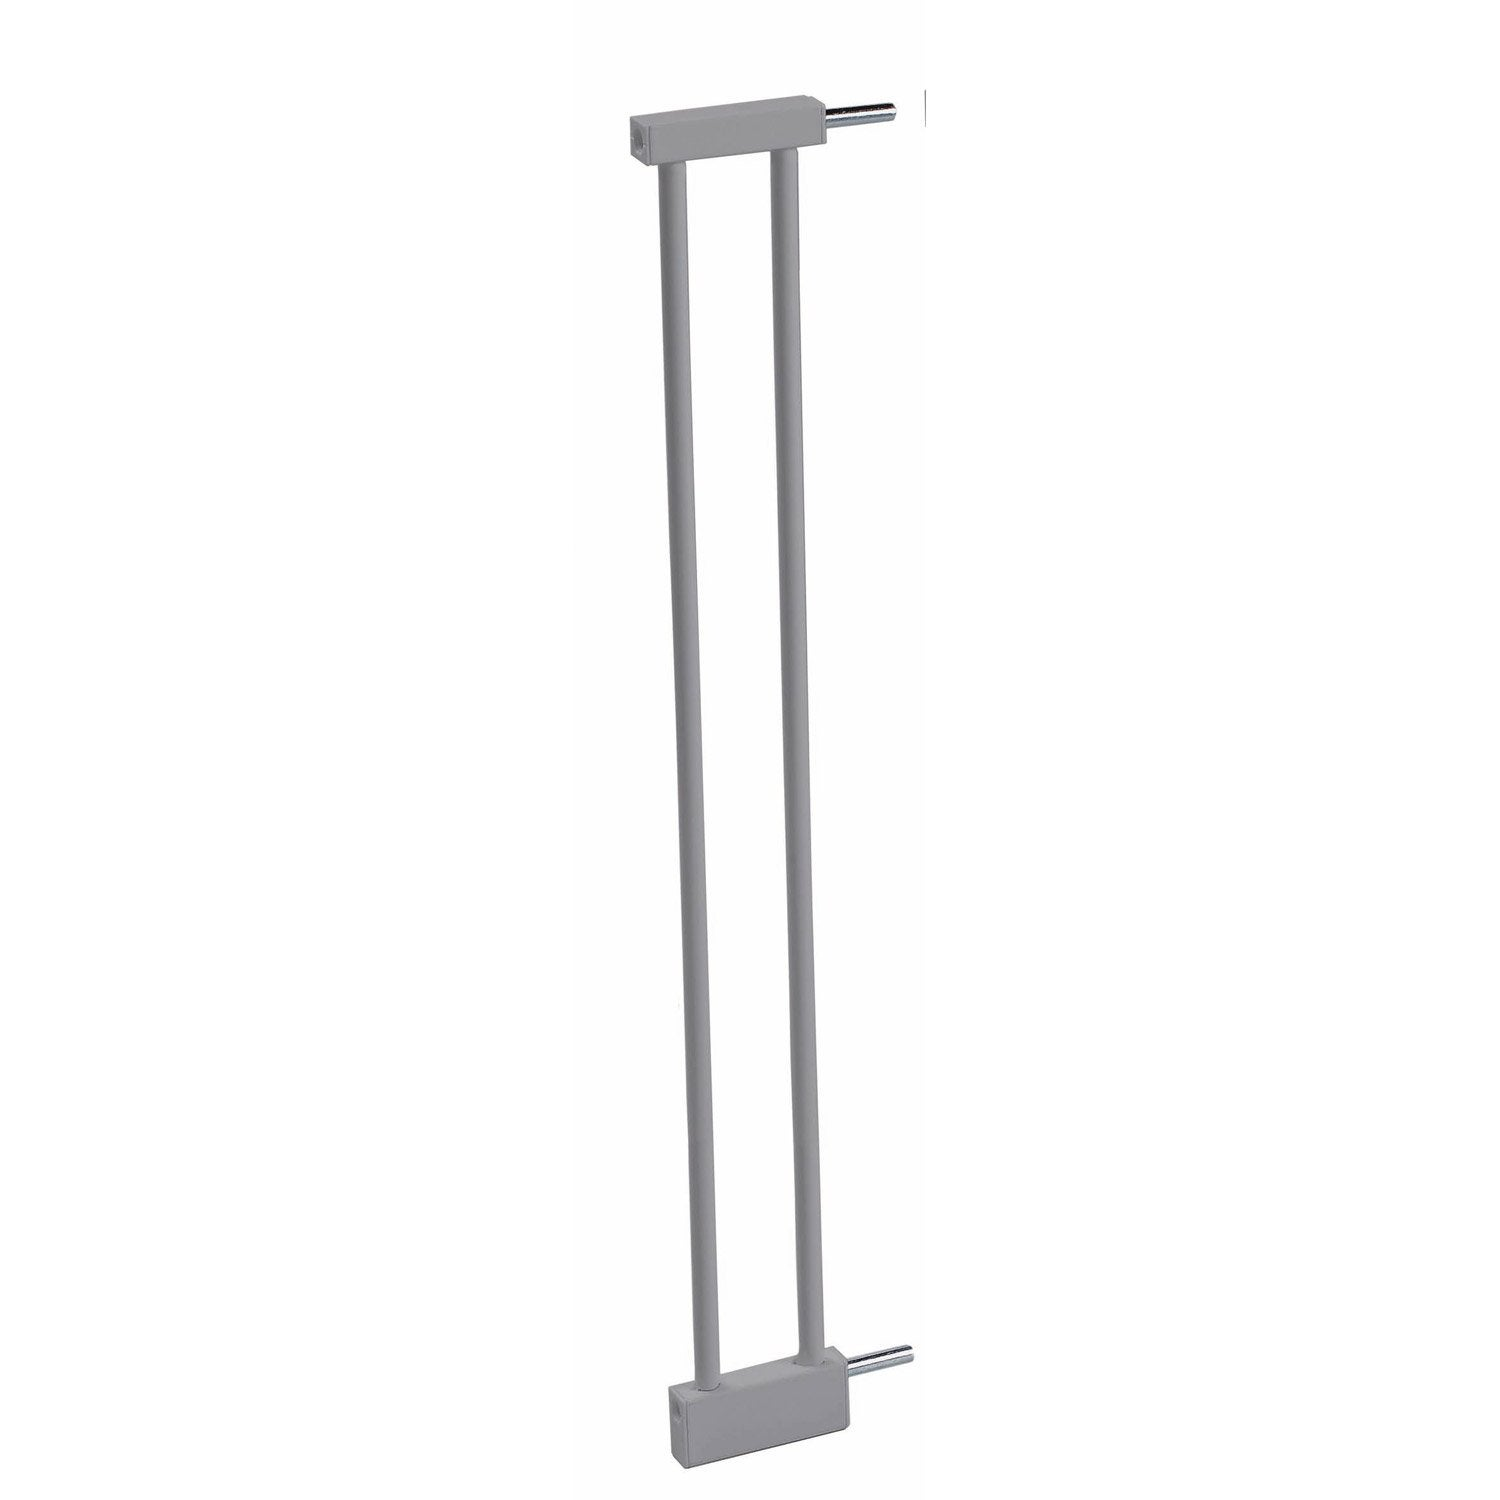 Extension de barri re de s curit enfant byblos4 long 10 cm h75 cm leroy - Leroy merlin barriere securite ...